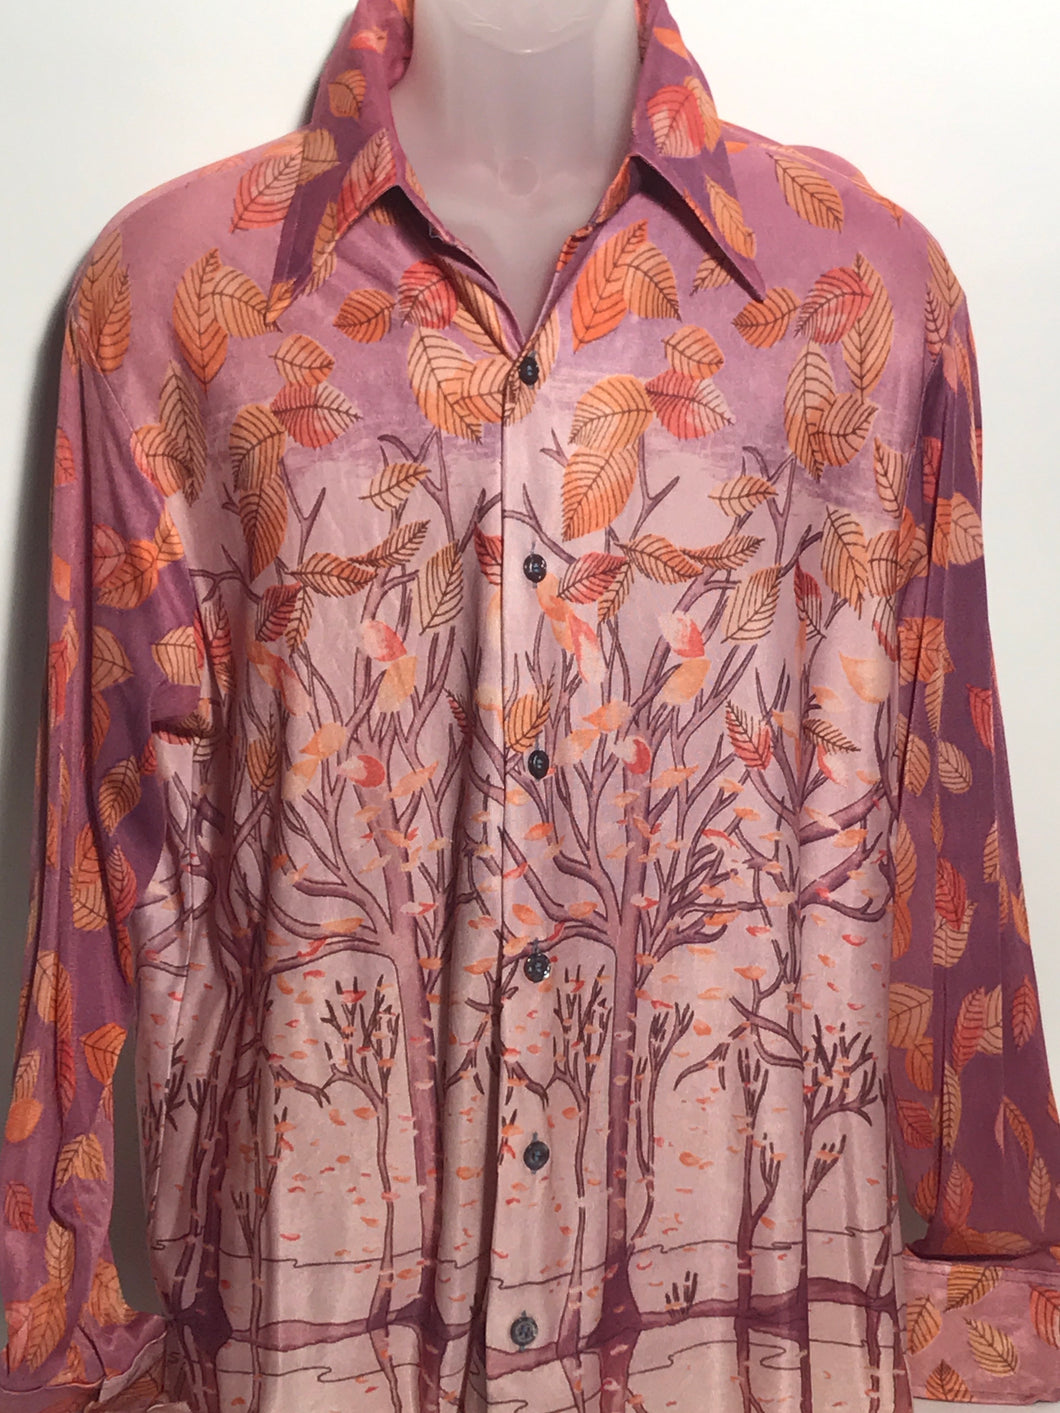 1970s Fall Leaves Men's Disco Shirt Size Extra Large RENTAL XL939